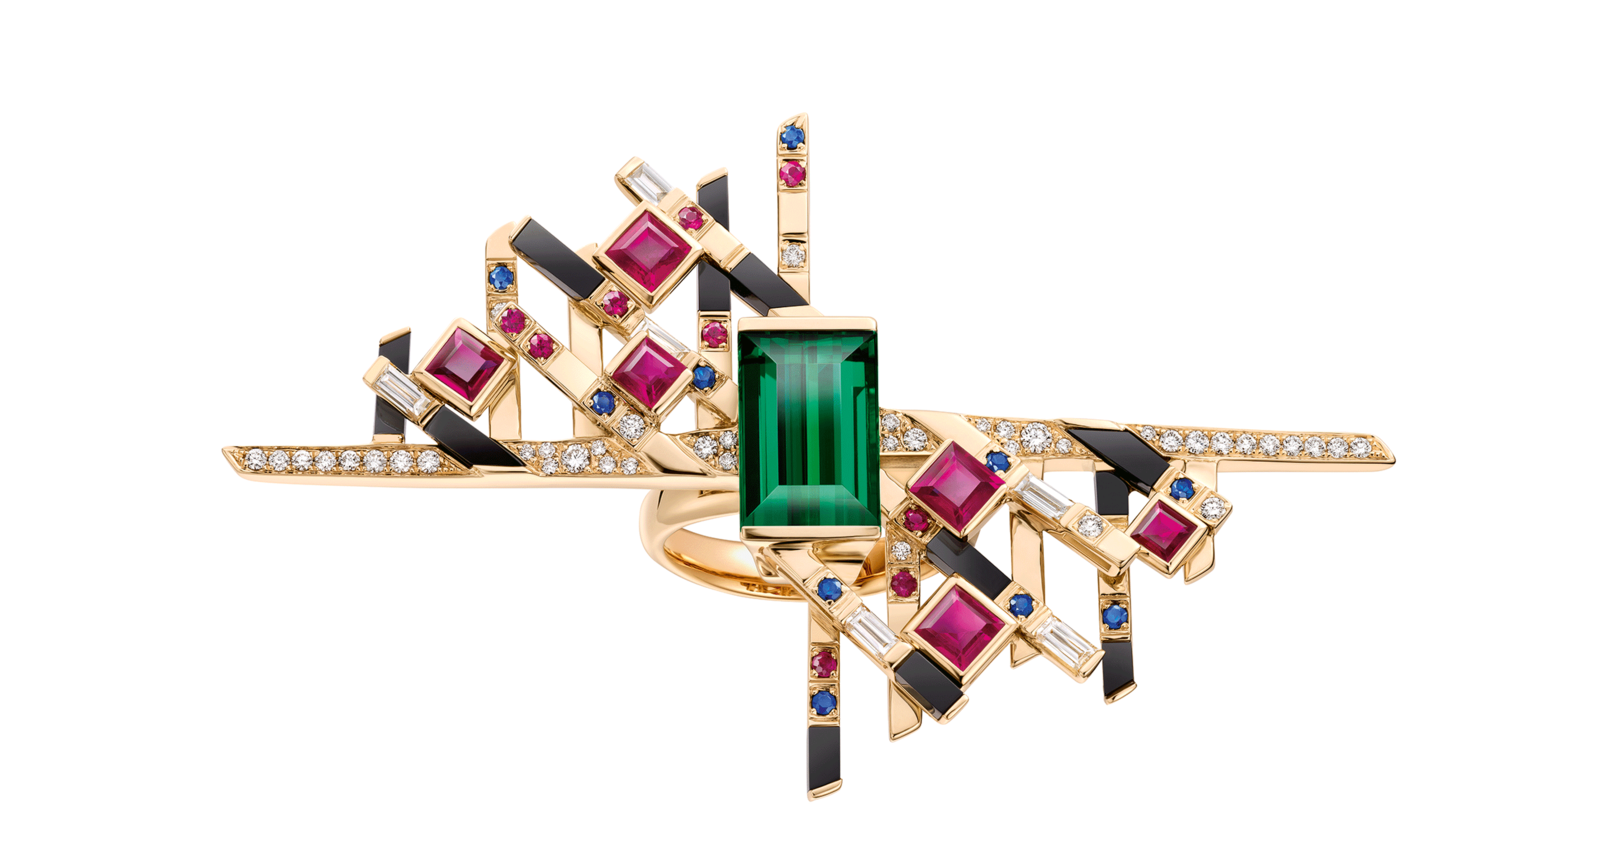 Chow Tai Fook Translates Art Into the Language of Jewellery